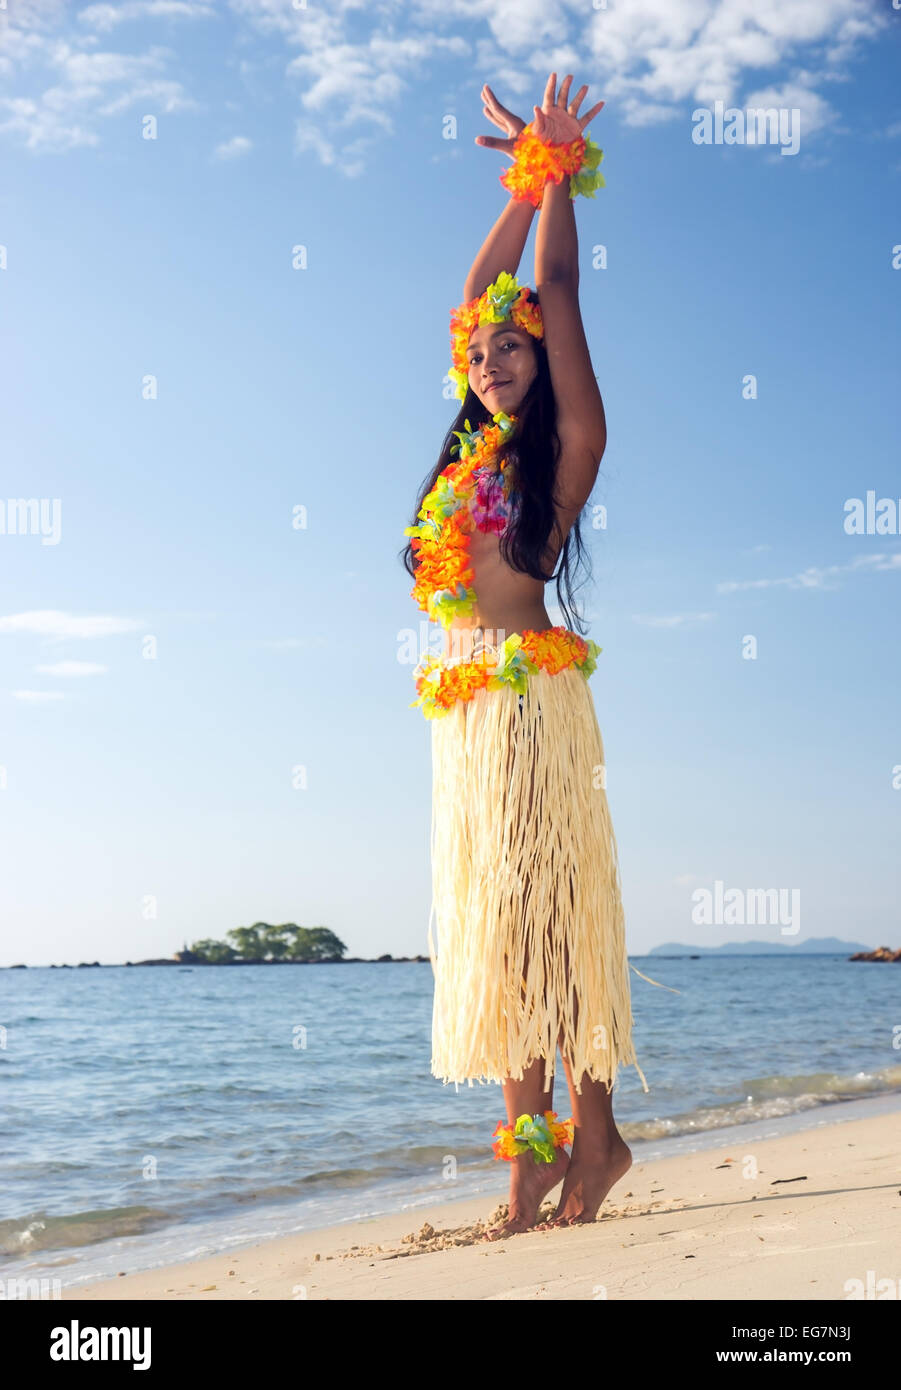 Hula Hawaii dancer dancing on the beach - Stock Image